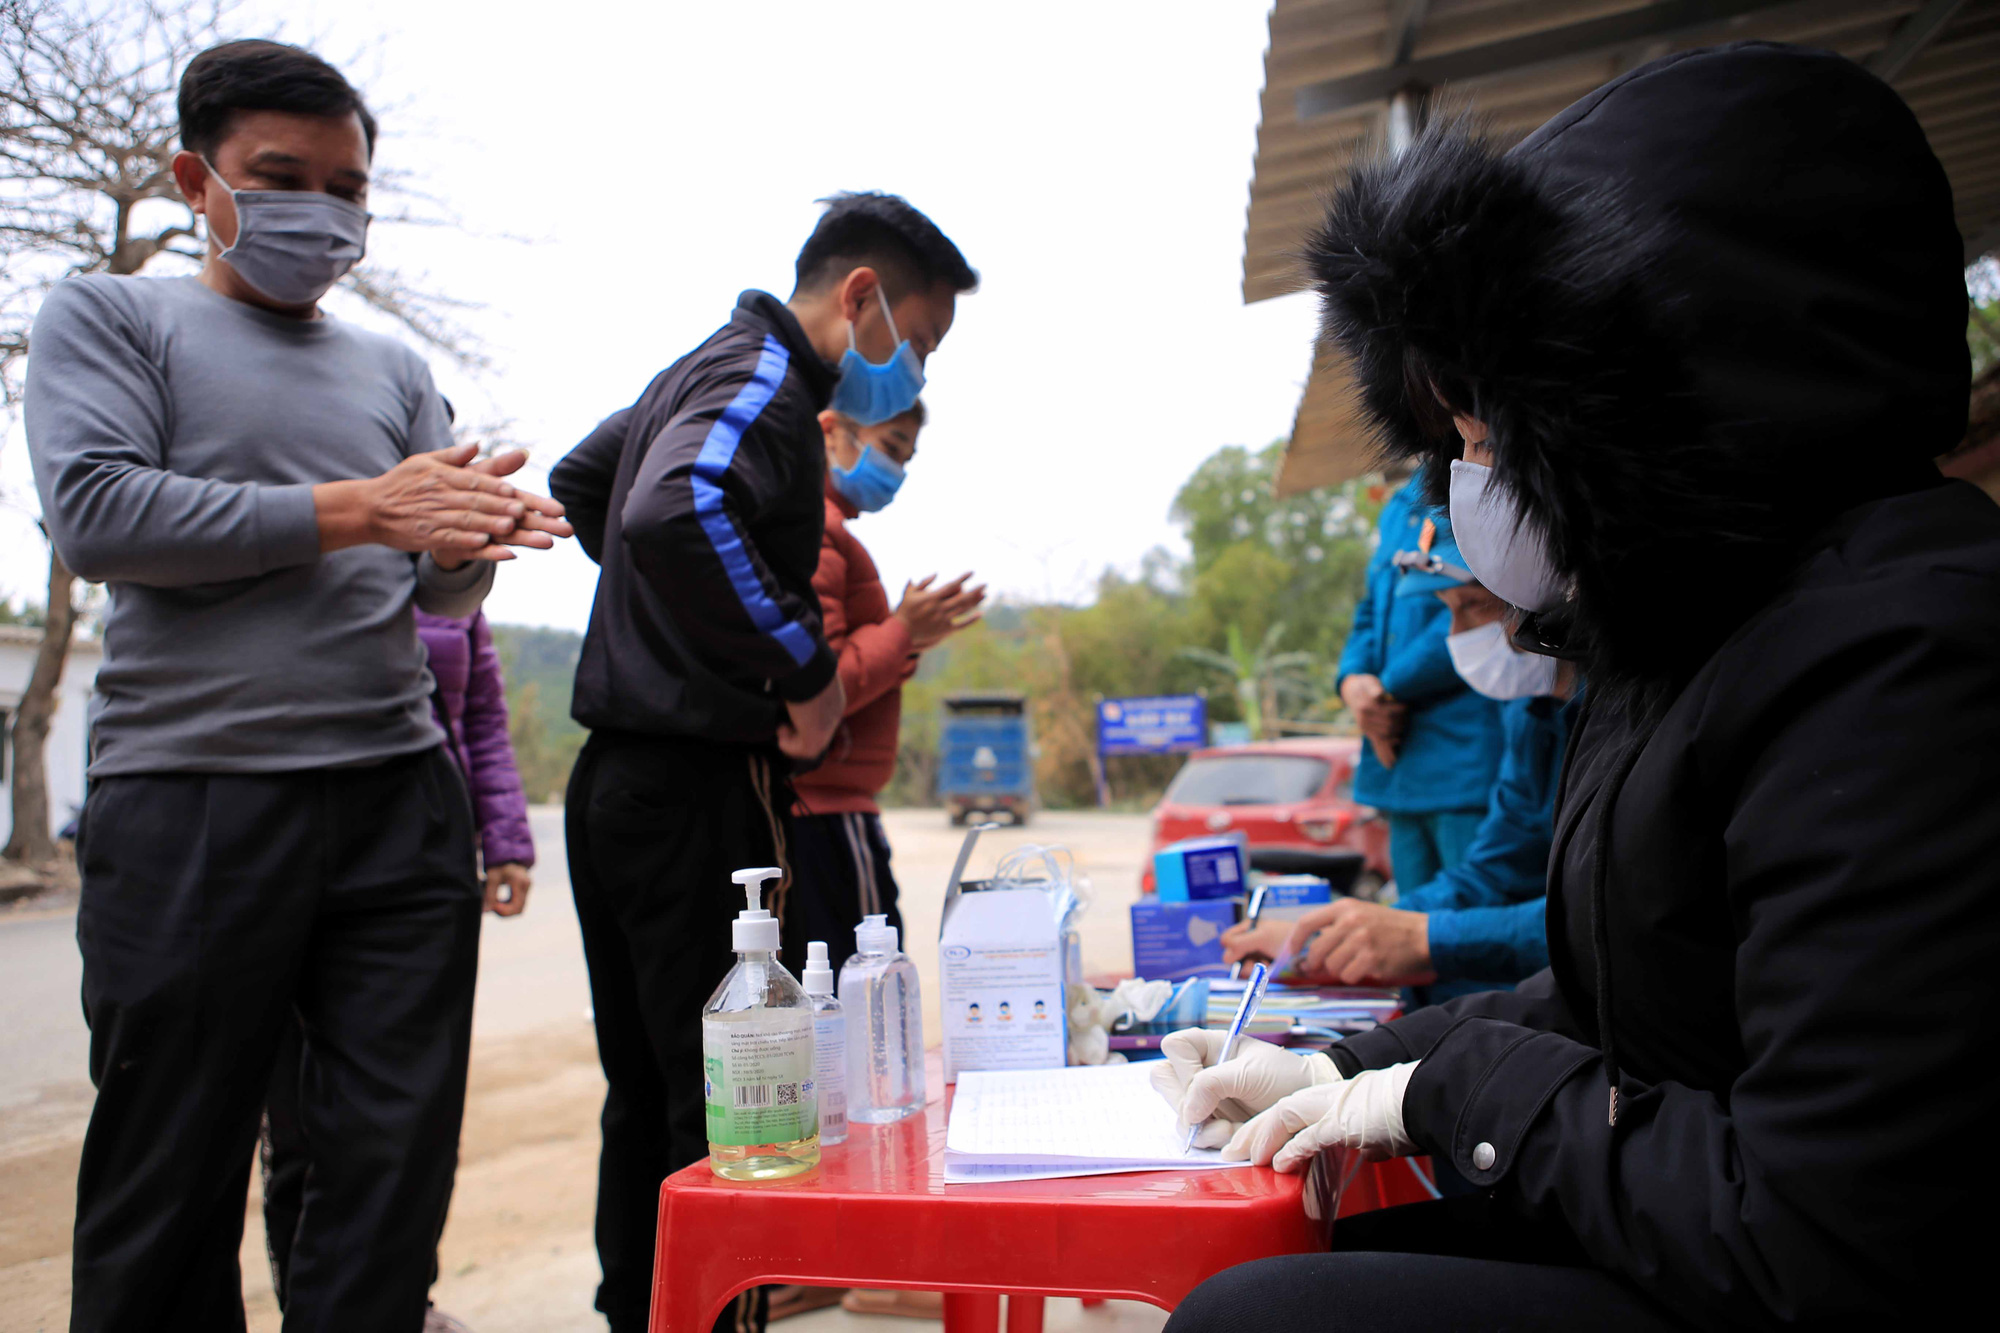 People are required to fill in health declarations when entering and exiting Hung Dao Commune, Chi Linh City, Hai Duong Province, January 28, 2021. Photo: Anh Cuong / Tuoi Tre